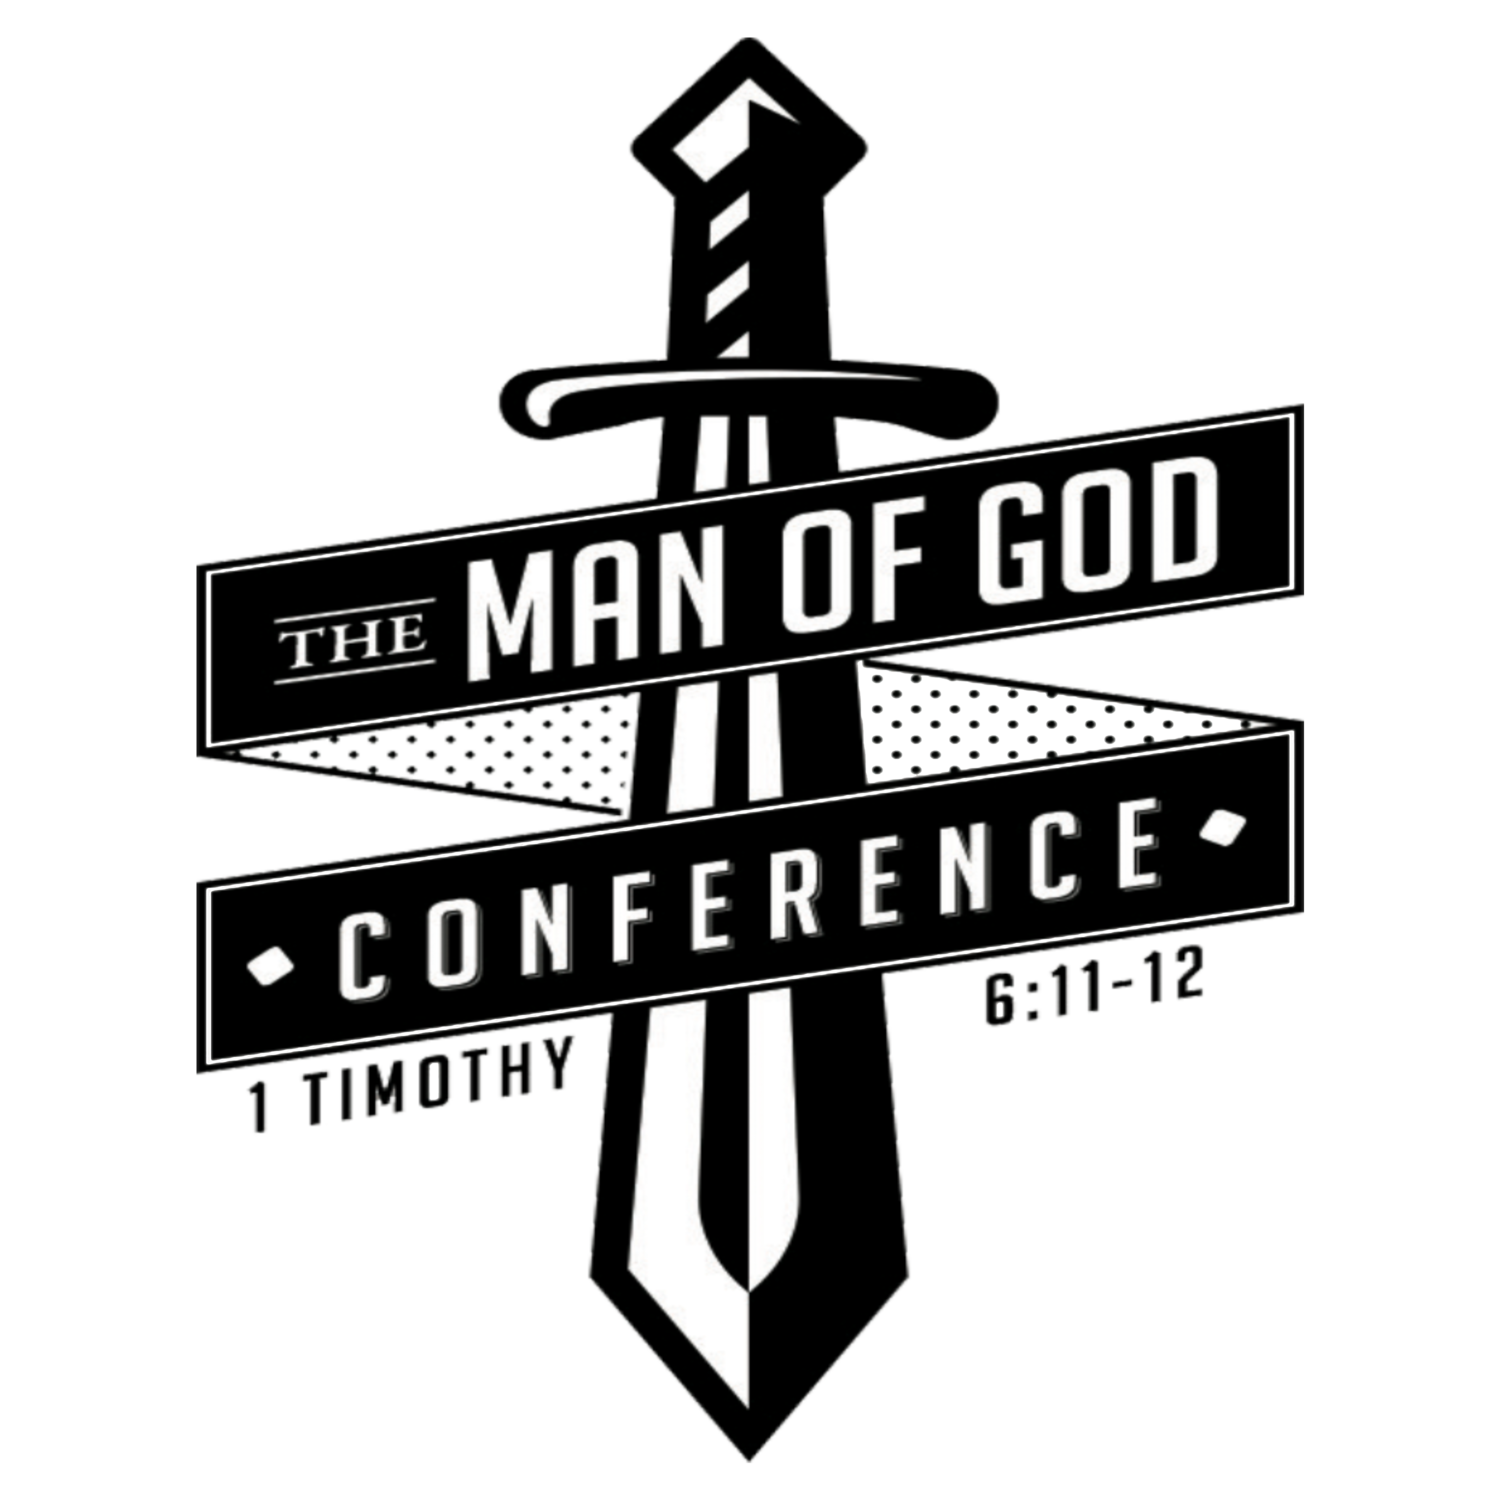 THE MAN OF GOD CONFERENCE